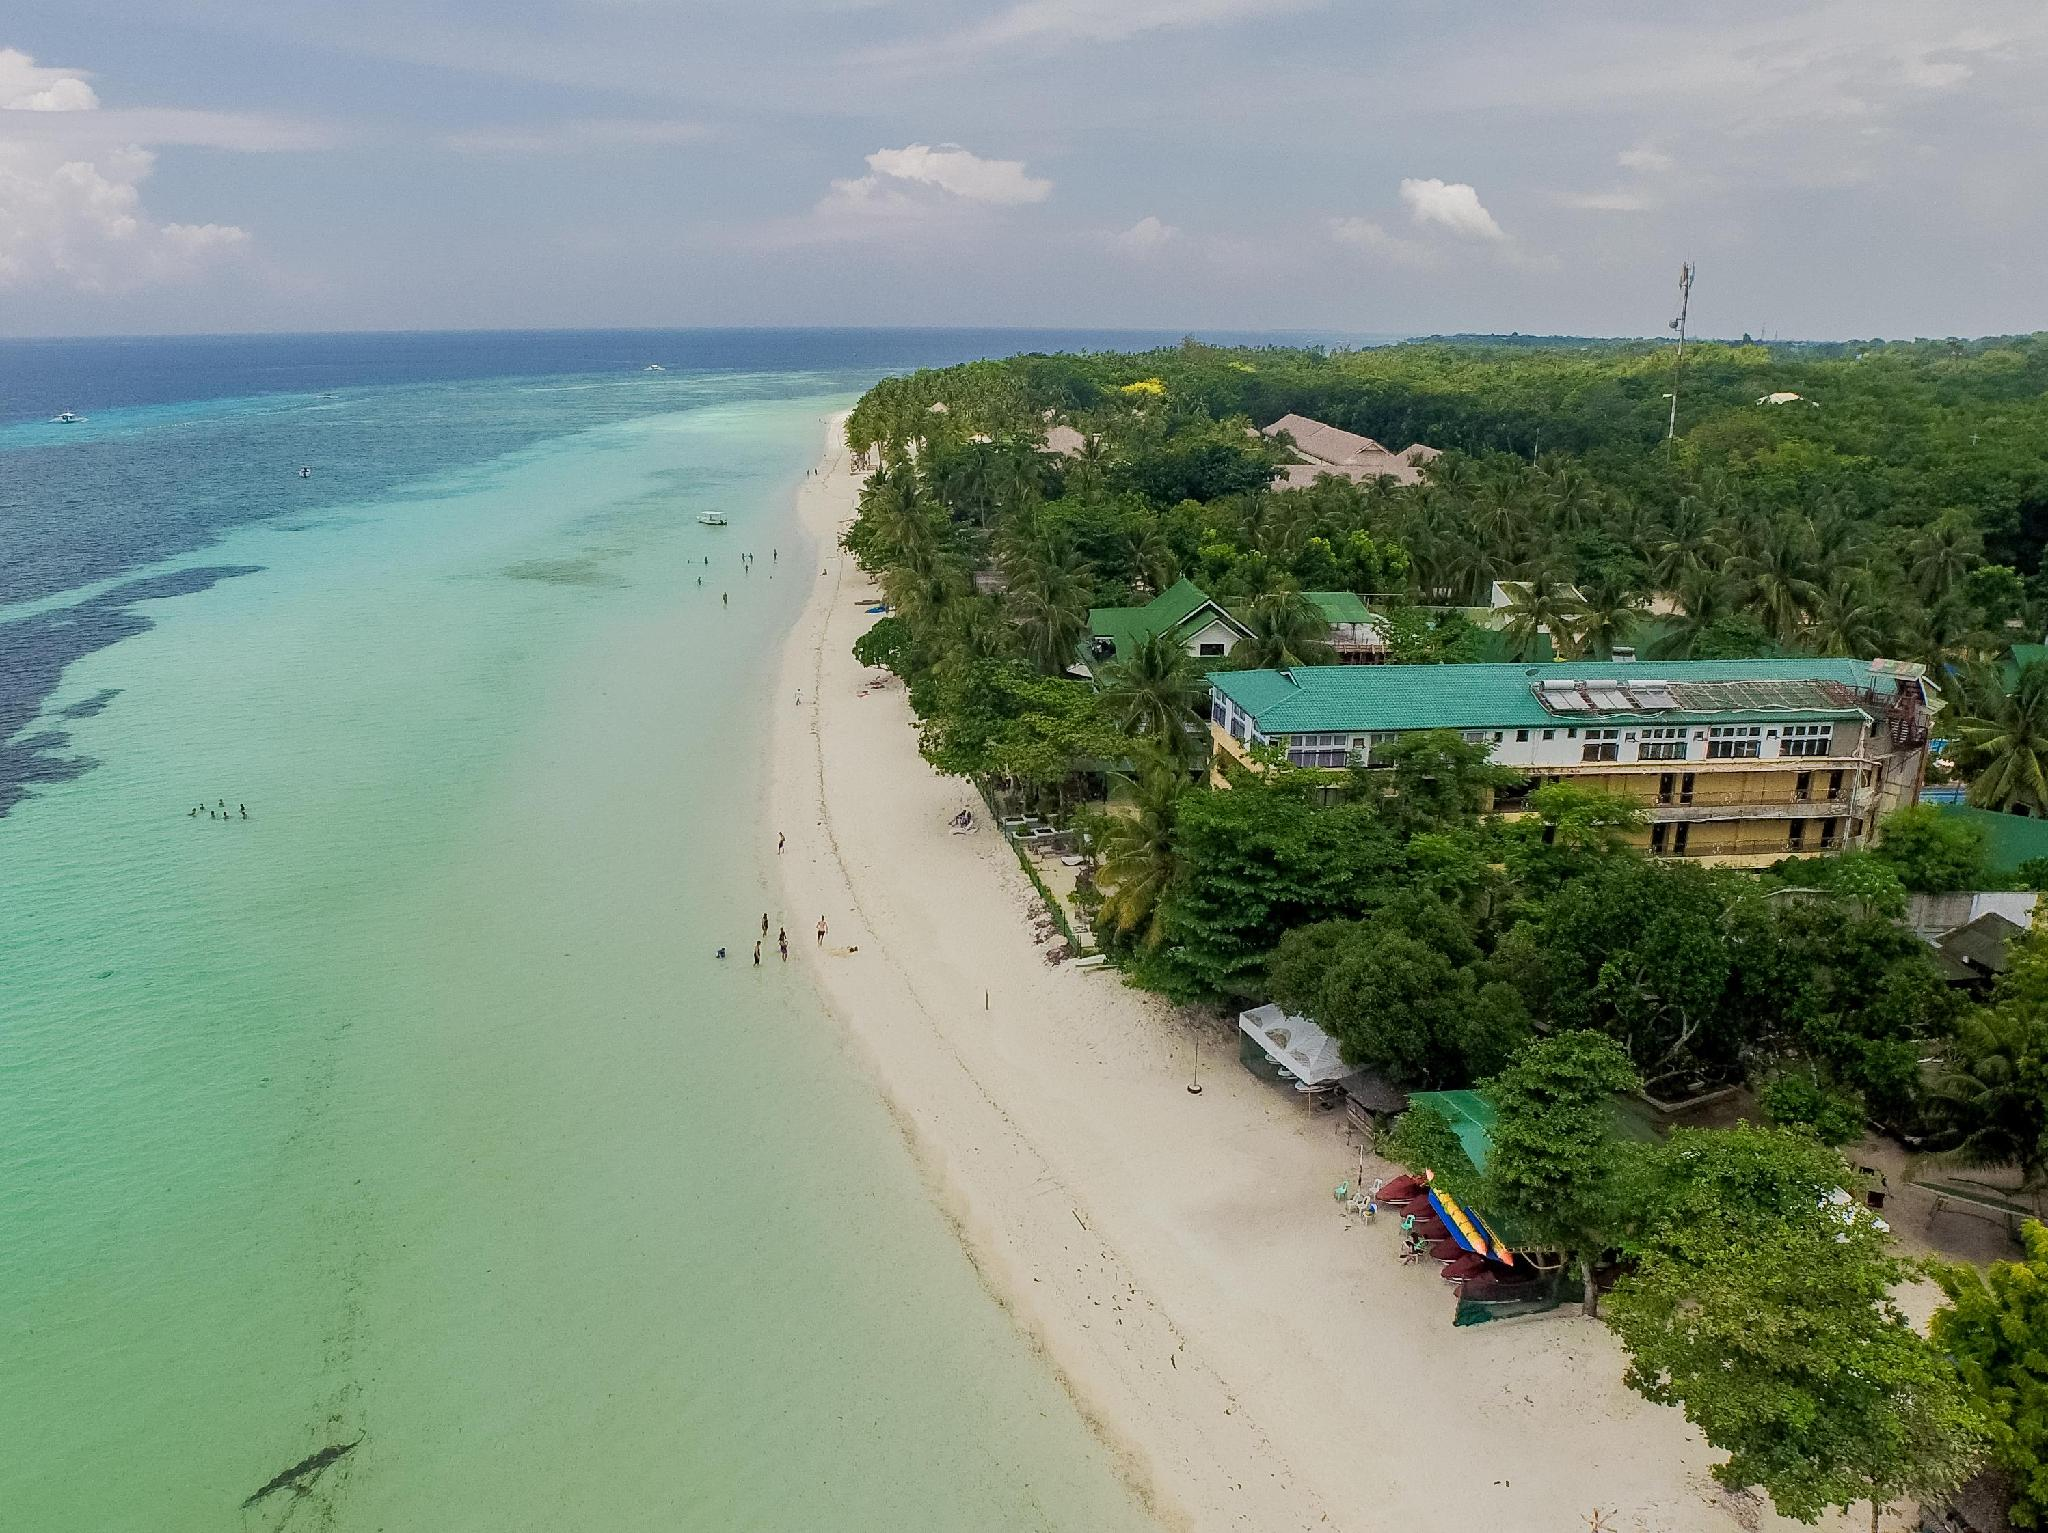 240062_16061213300043440059 - Aerial View of Dumaluan Beach Resort in Panglao, Bohol - Bohol Tourism | Bohol Travel & Tour